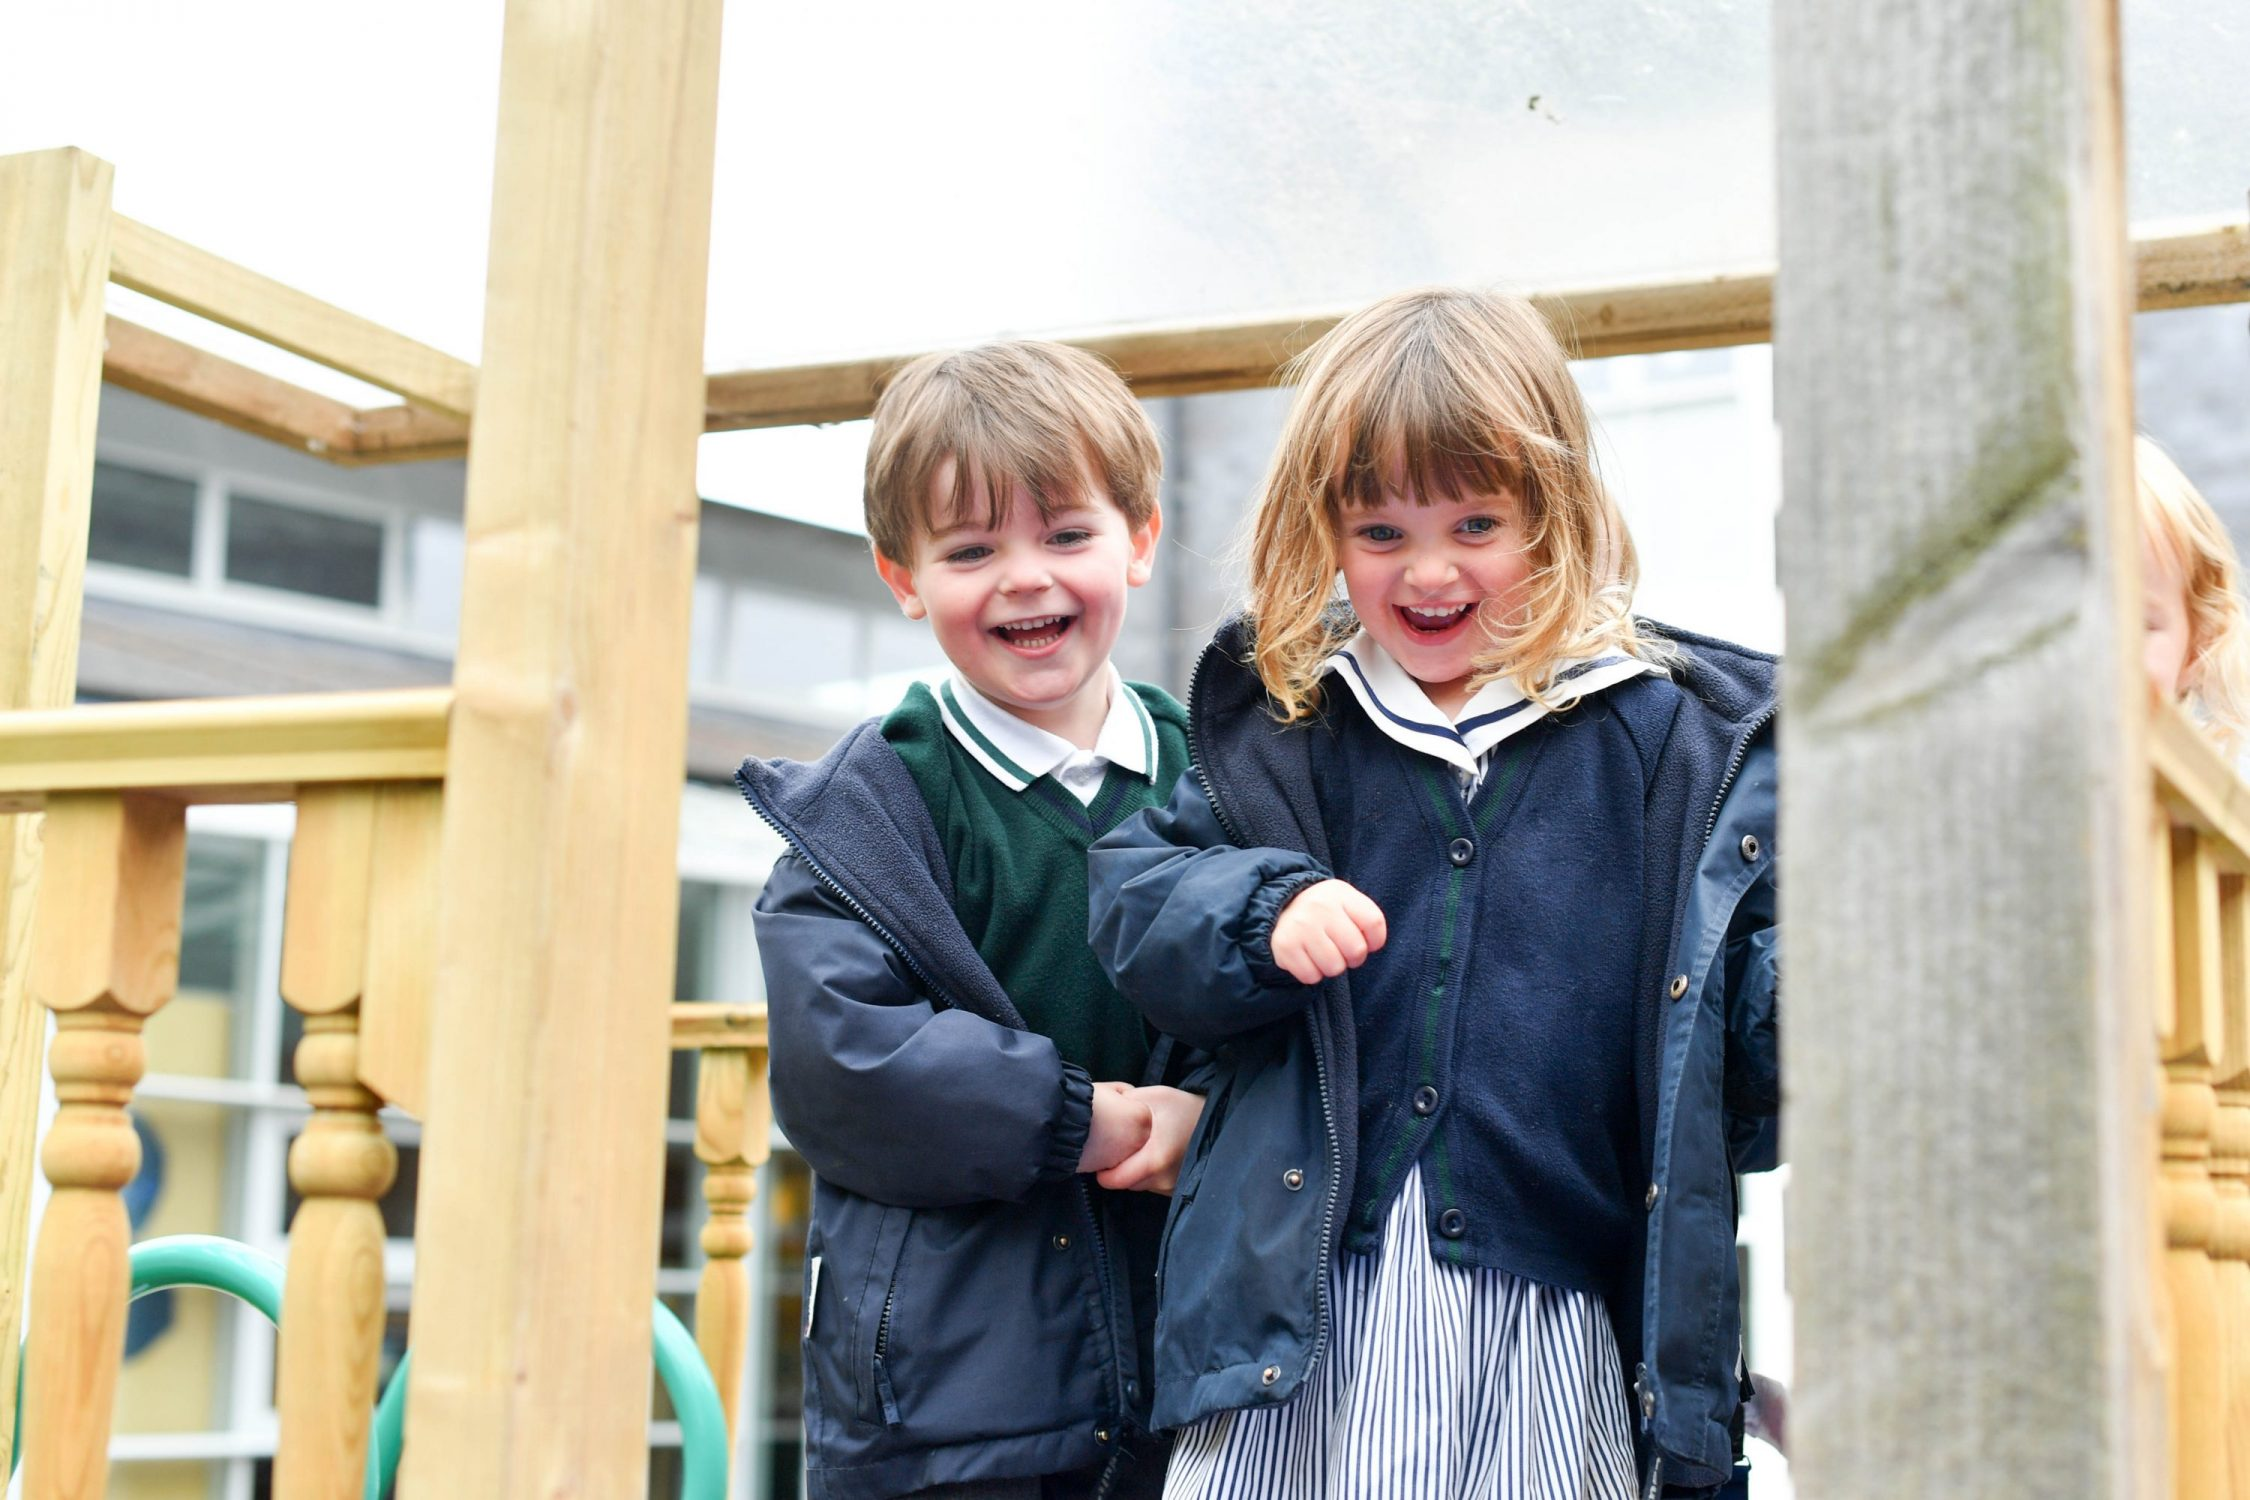 Children playing outdoors together on play area laughing